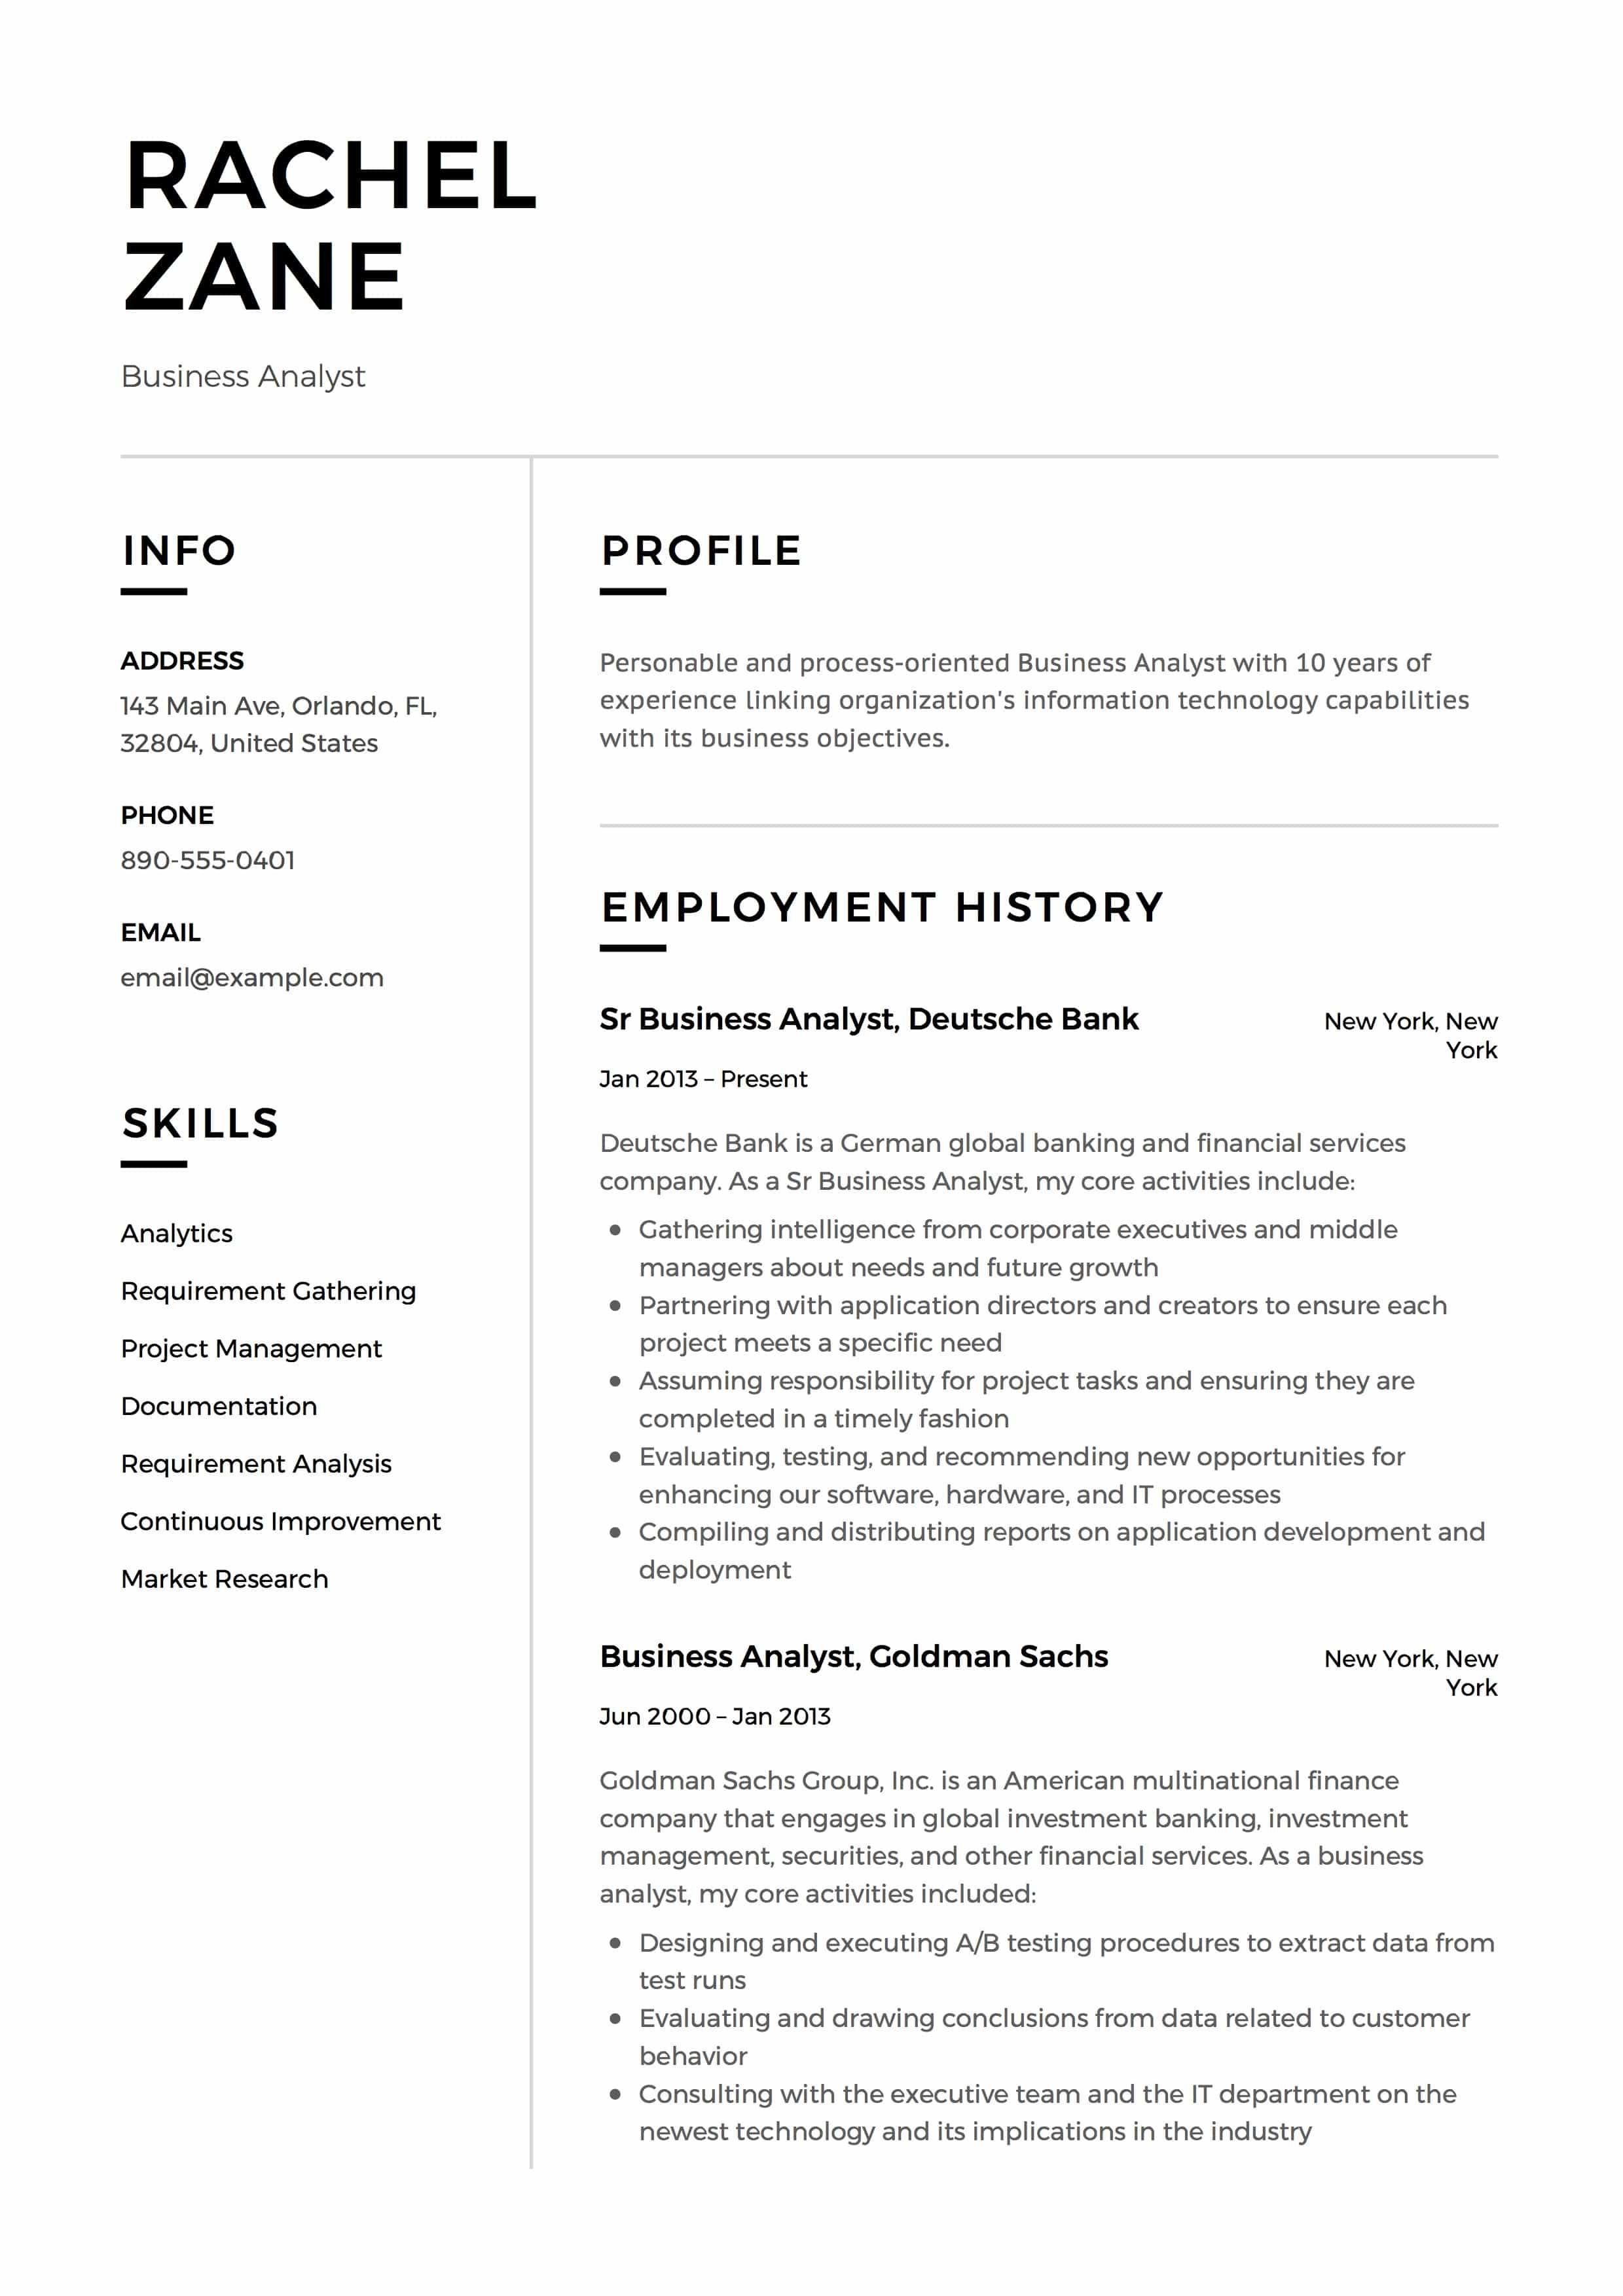 54 Great Business Analyst Resume Examples 2018 for Gallery